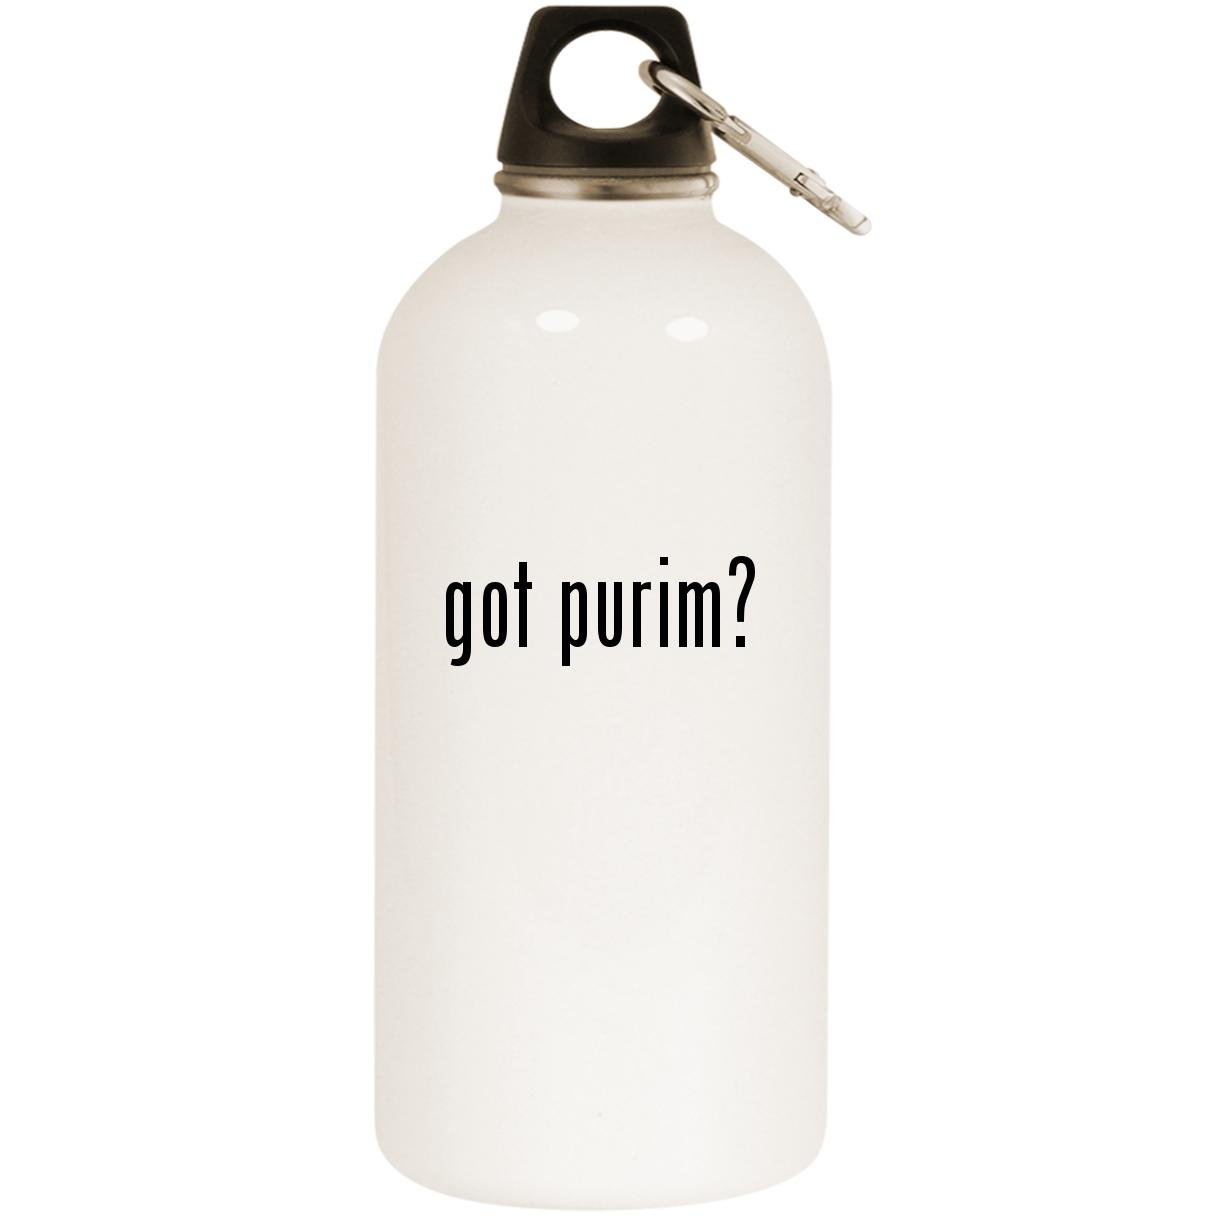 got purim? - White 20oz Stainless Steel Water Bottle with Carabiner